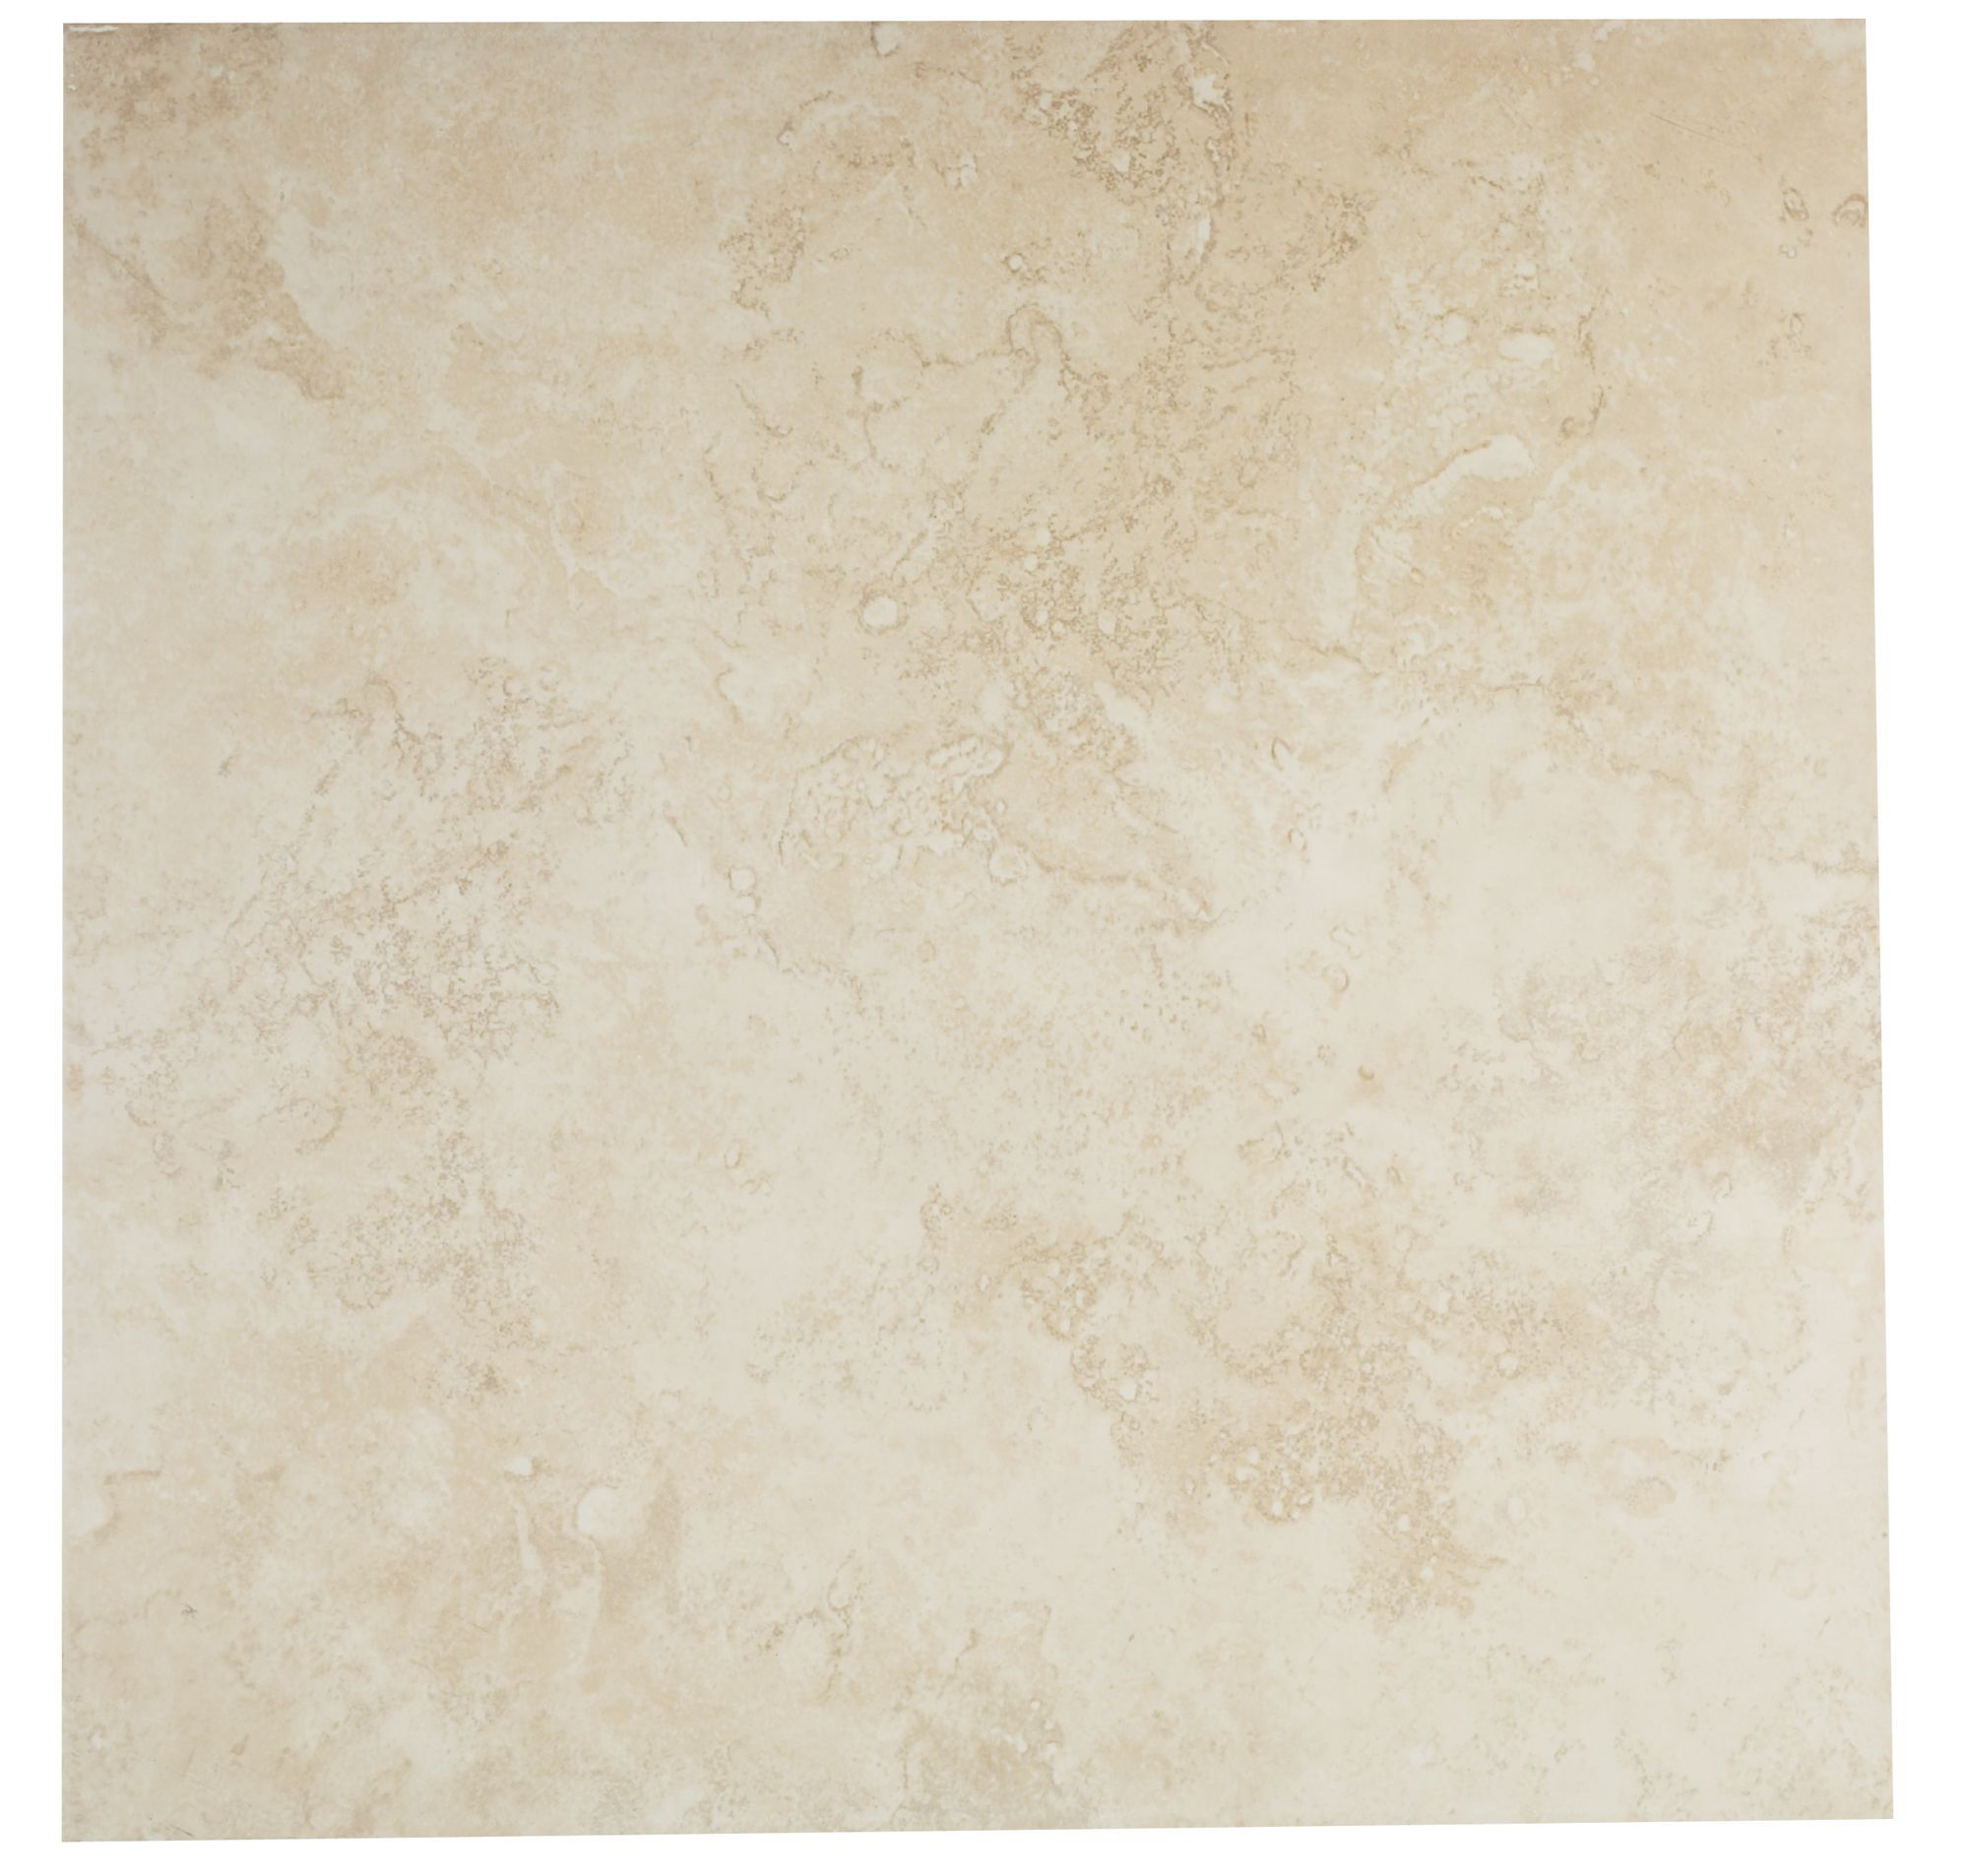 Castle travertine cream stone effect ceramic wall floor tile pack of 5 l 450mm w 450mm Ceramic stone tile